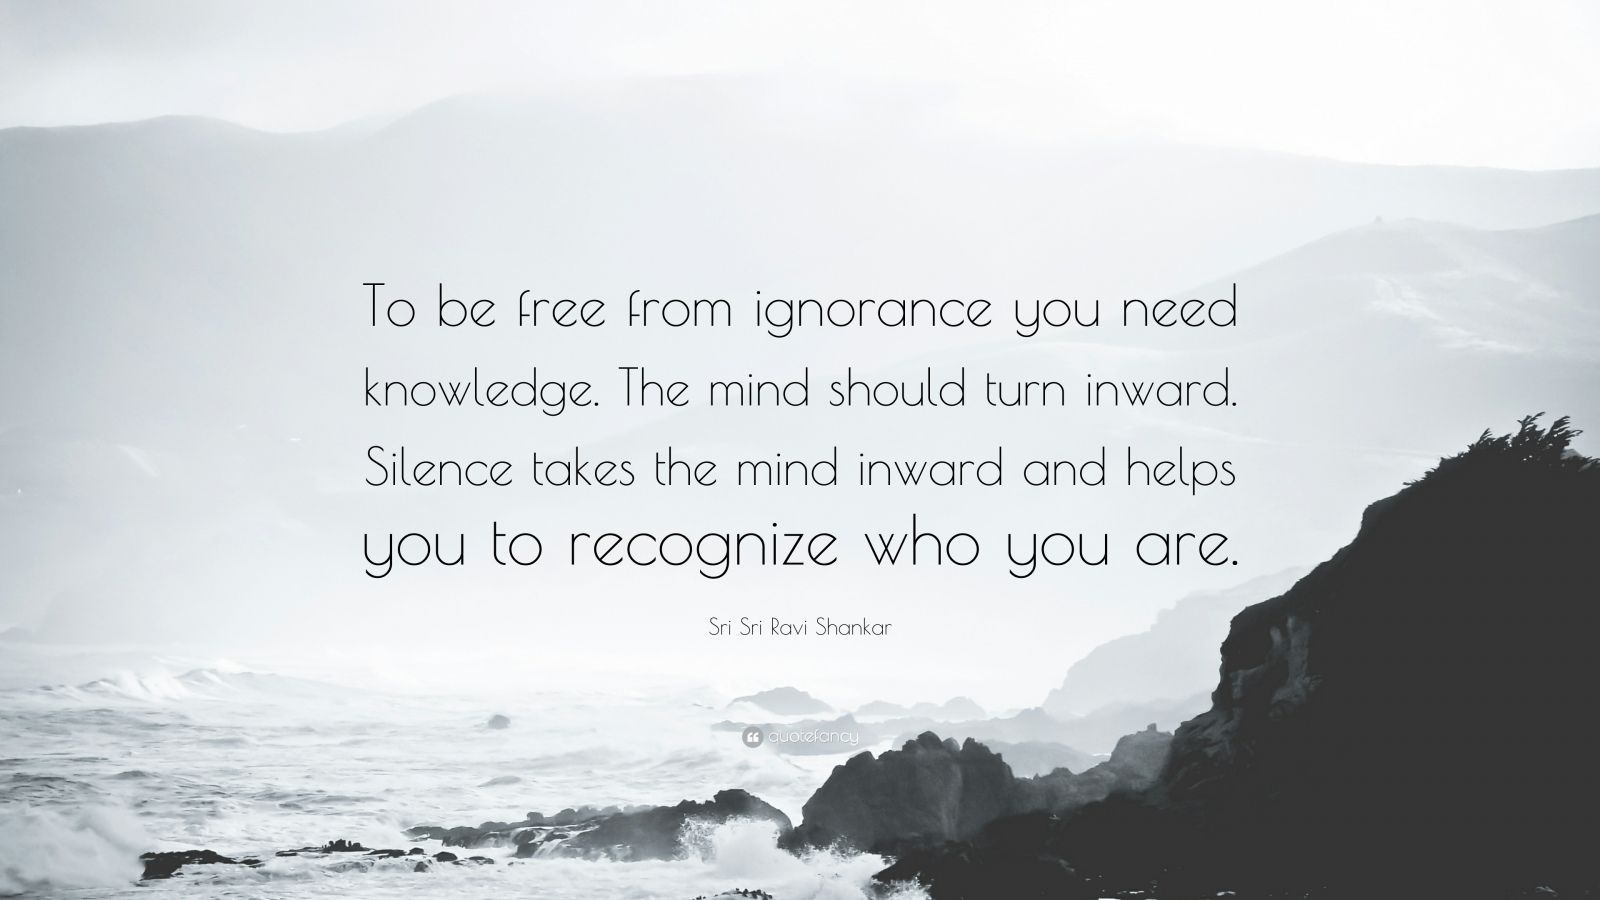 "Sri Sri Ravi Shankar Quote: ""To be free from ignorance you need knowledge. The mind should turn inward. Silence takes the mind inward and helps you to recognize who you are."""